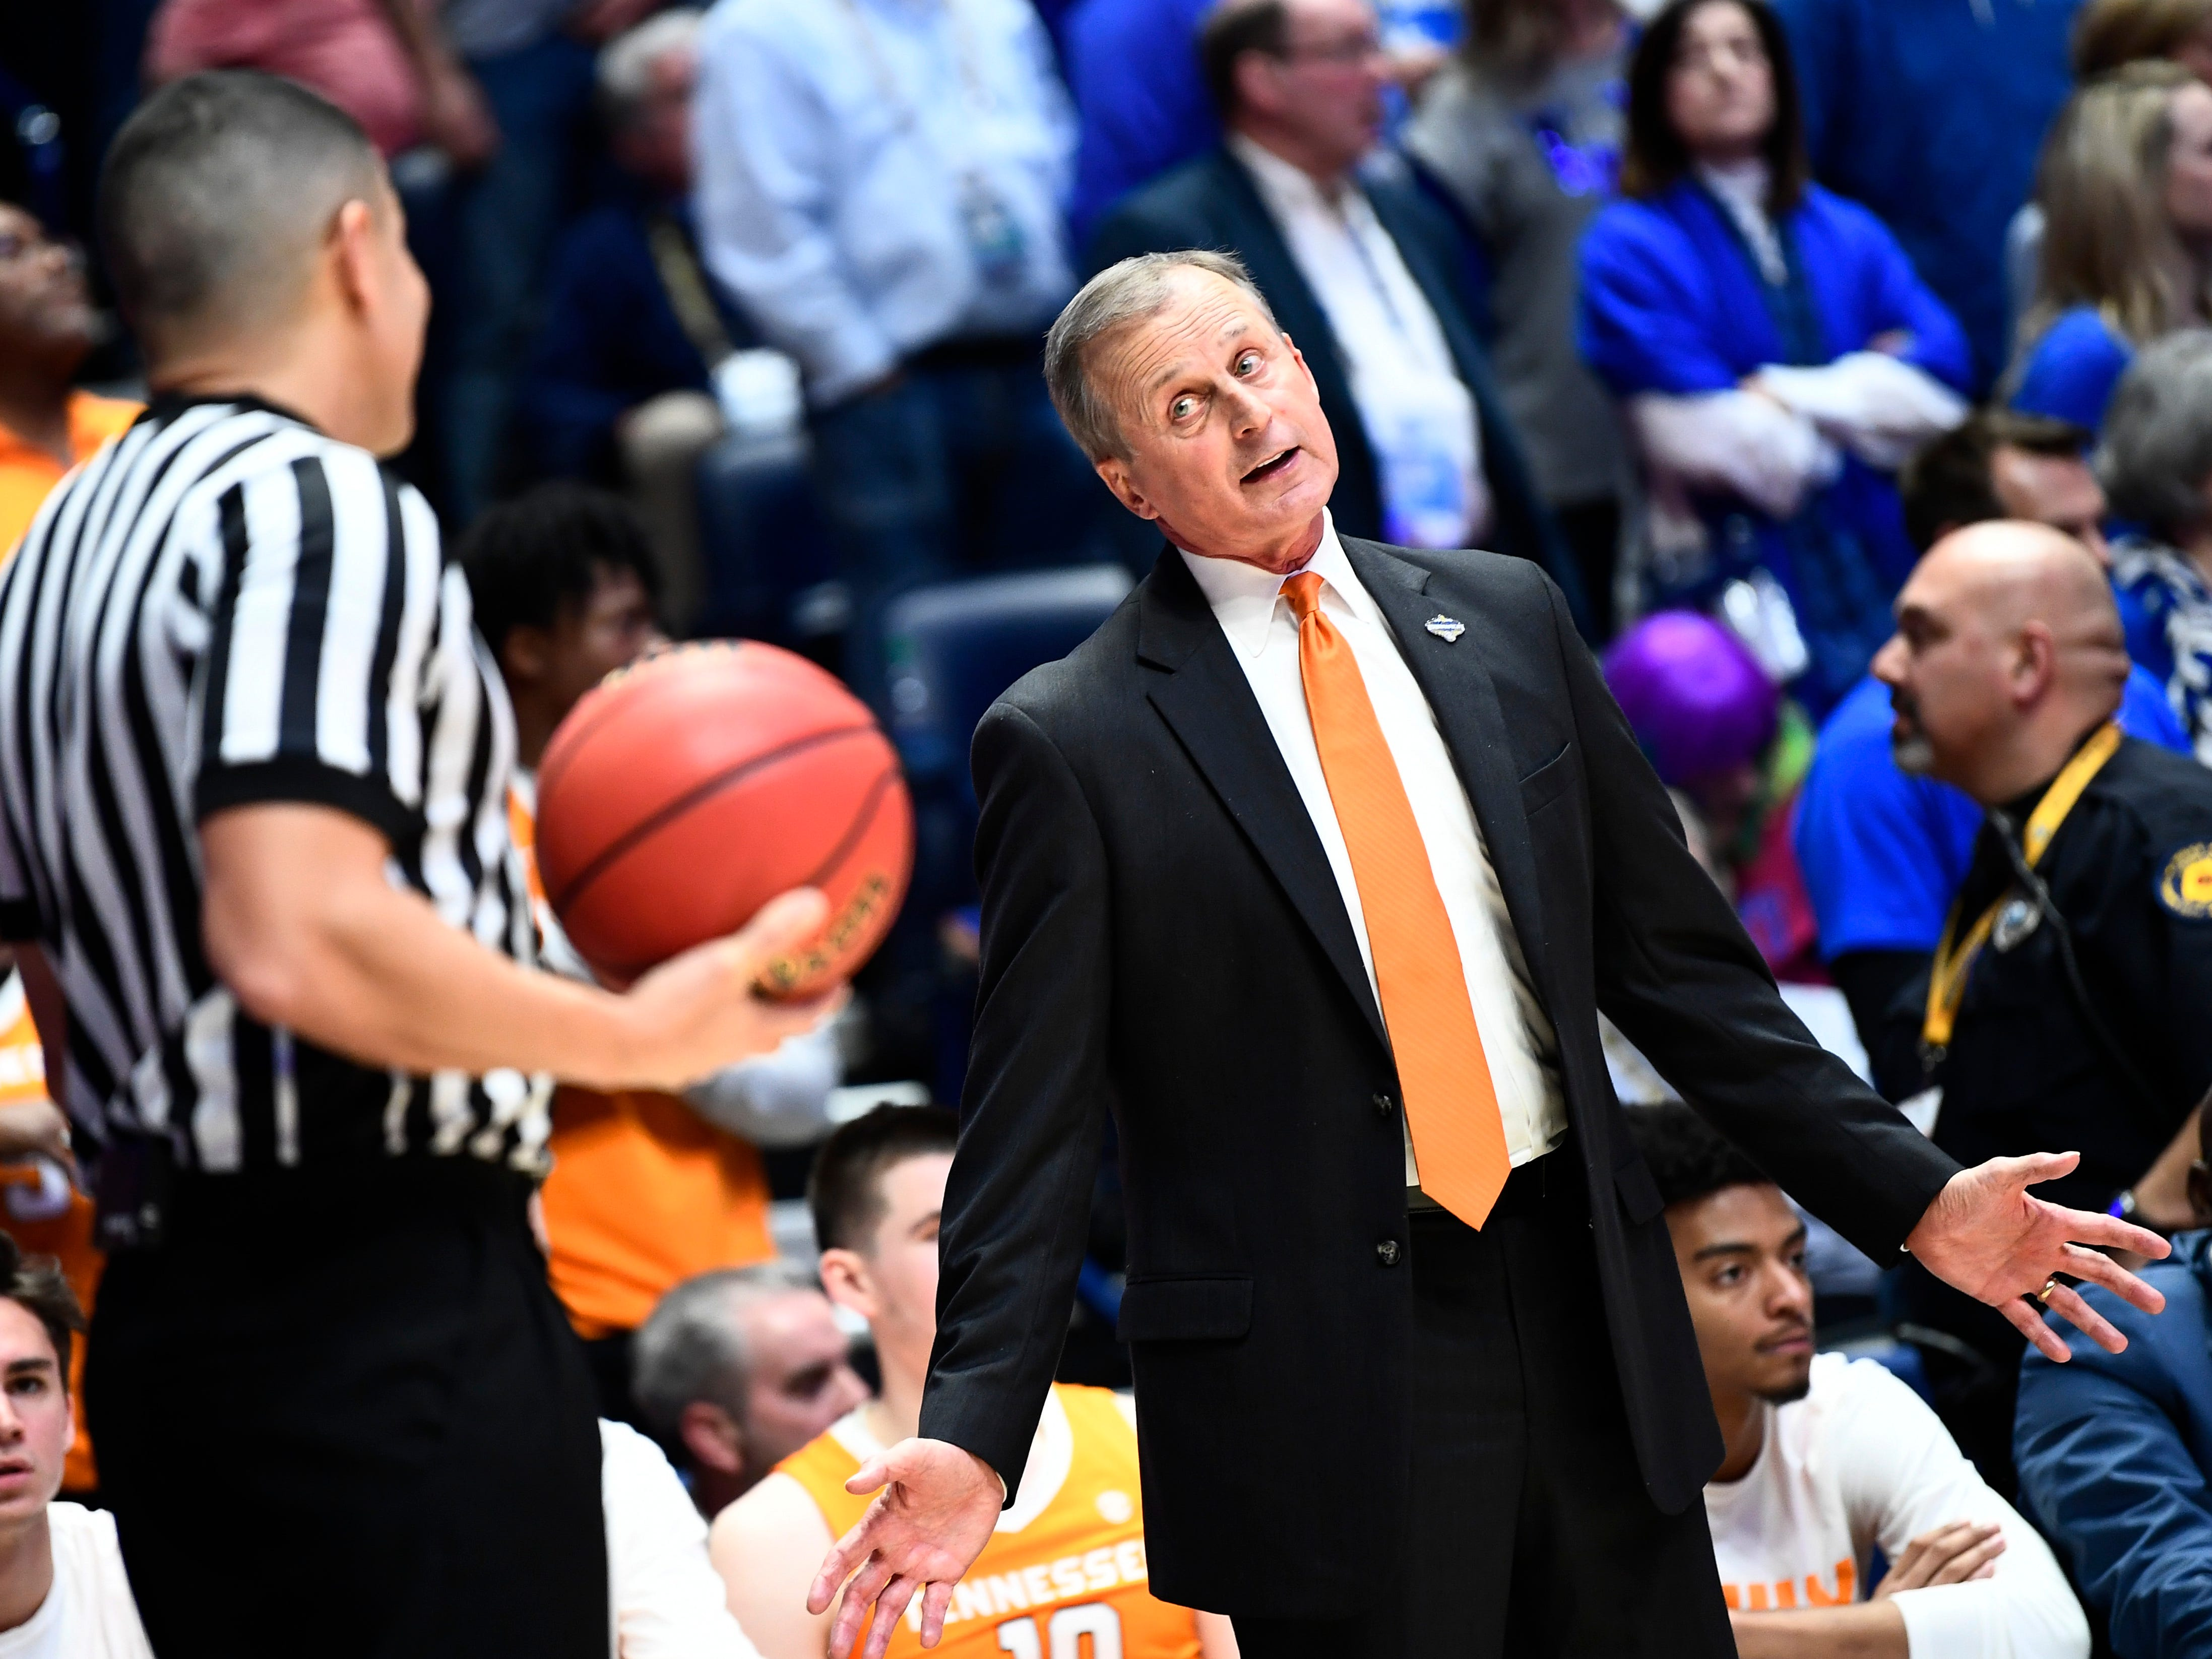 Tennessee head coach Rick Barnes argues a call with a referee during the second half of the SEC Men's Basketball Tournament game against Kentucky at Bridgestone Arena in Nashville, Tenn., Saturday, March 16, 2019.